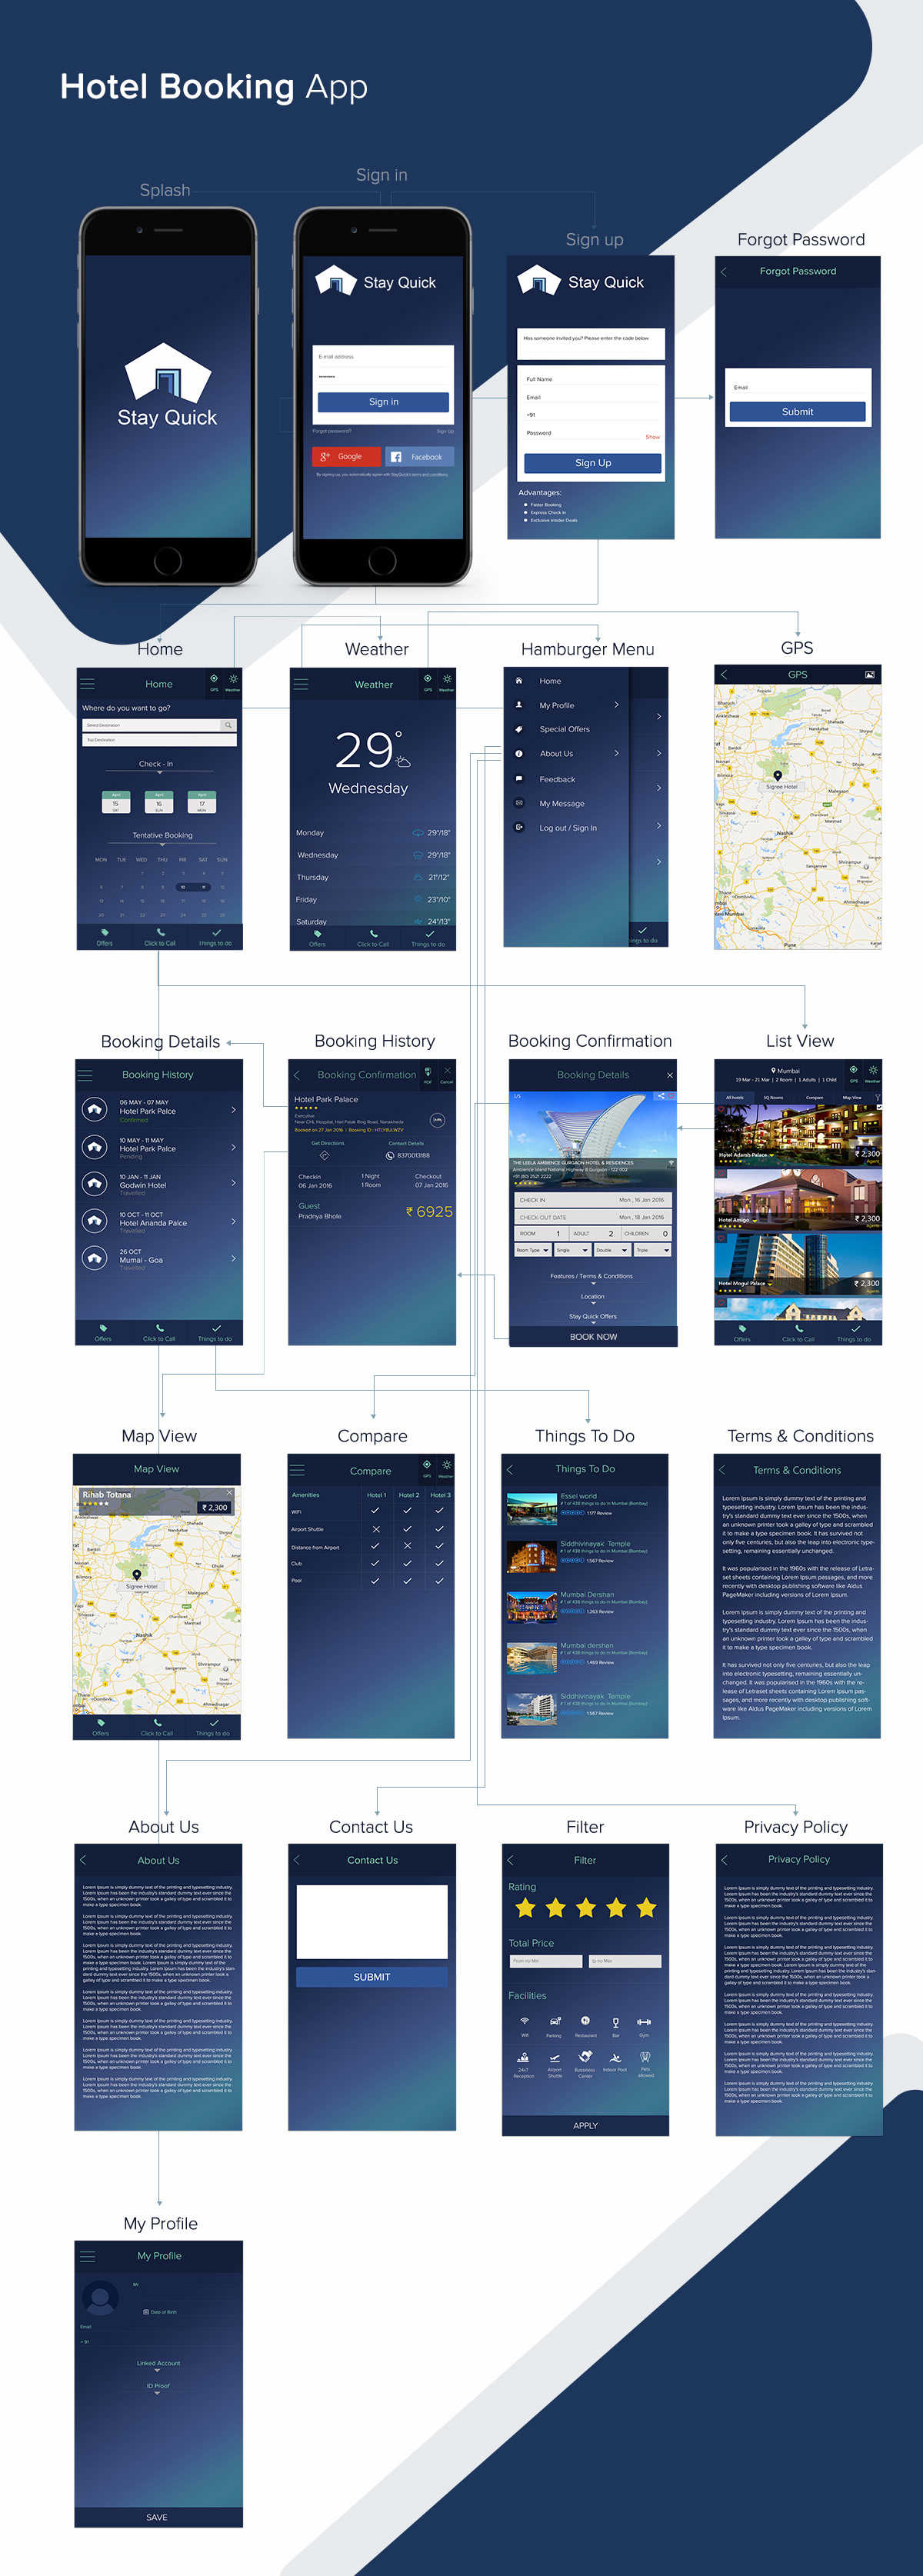 UXSense Last Minute Hotel Booking App